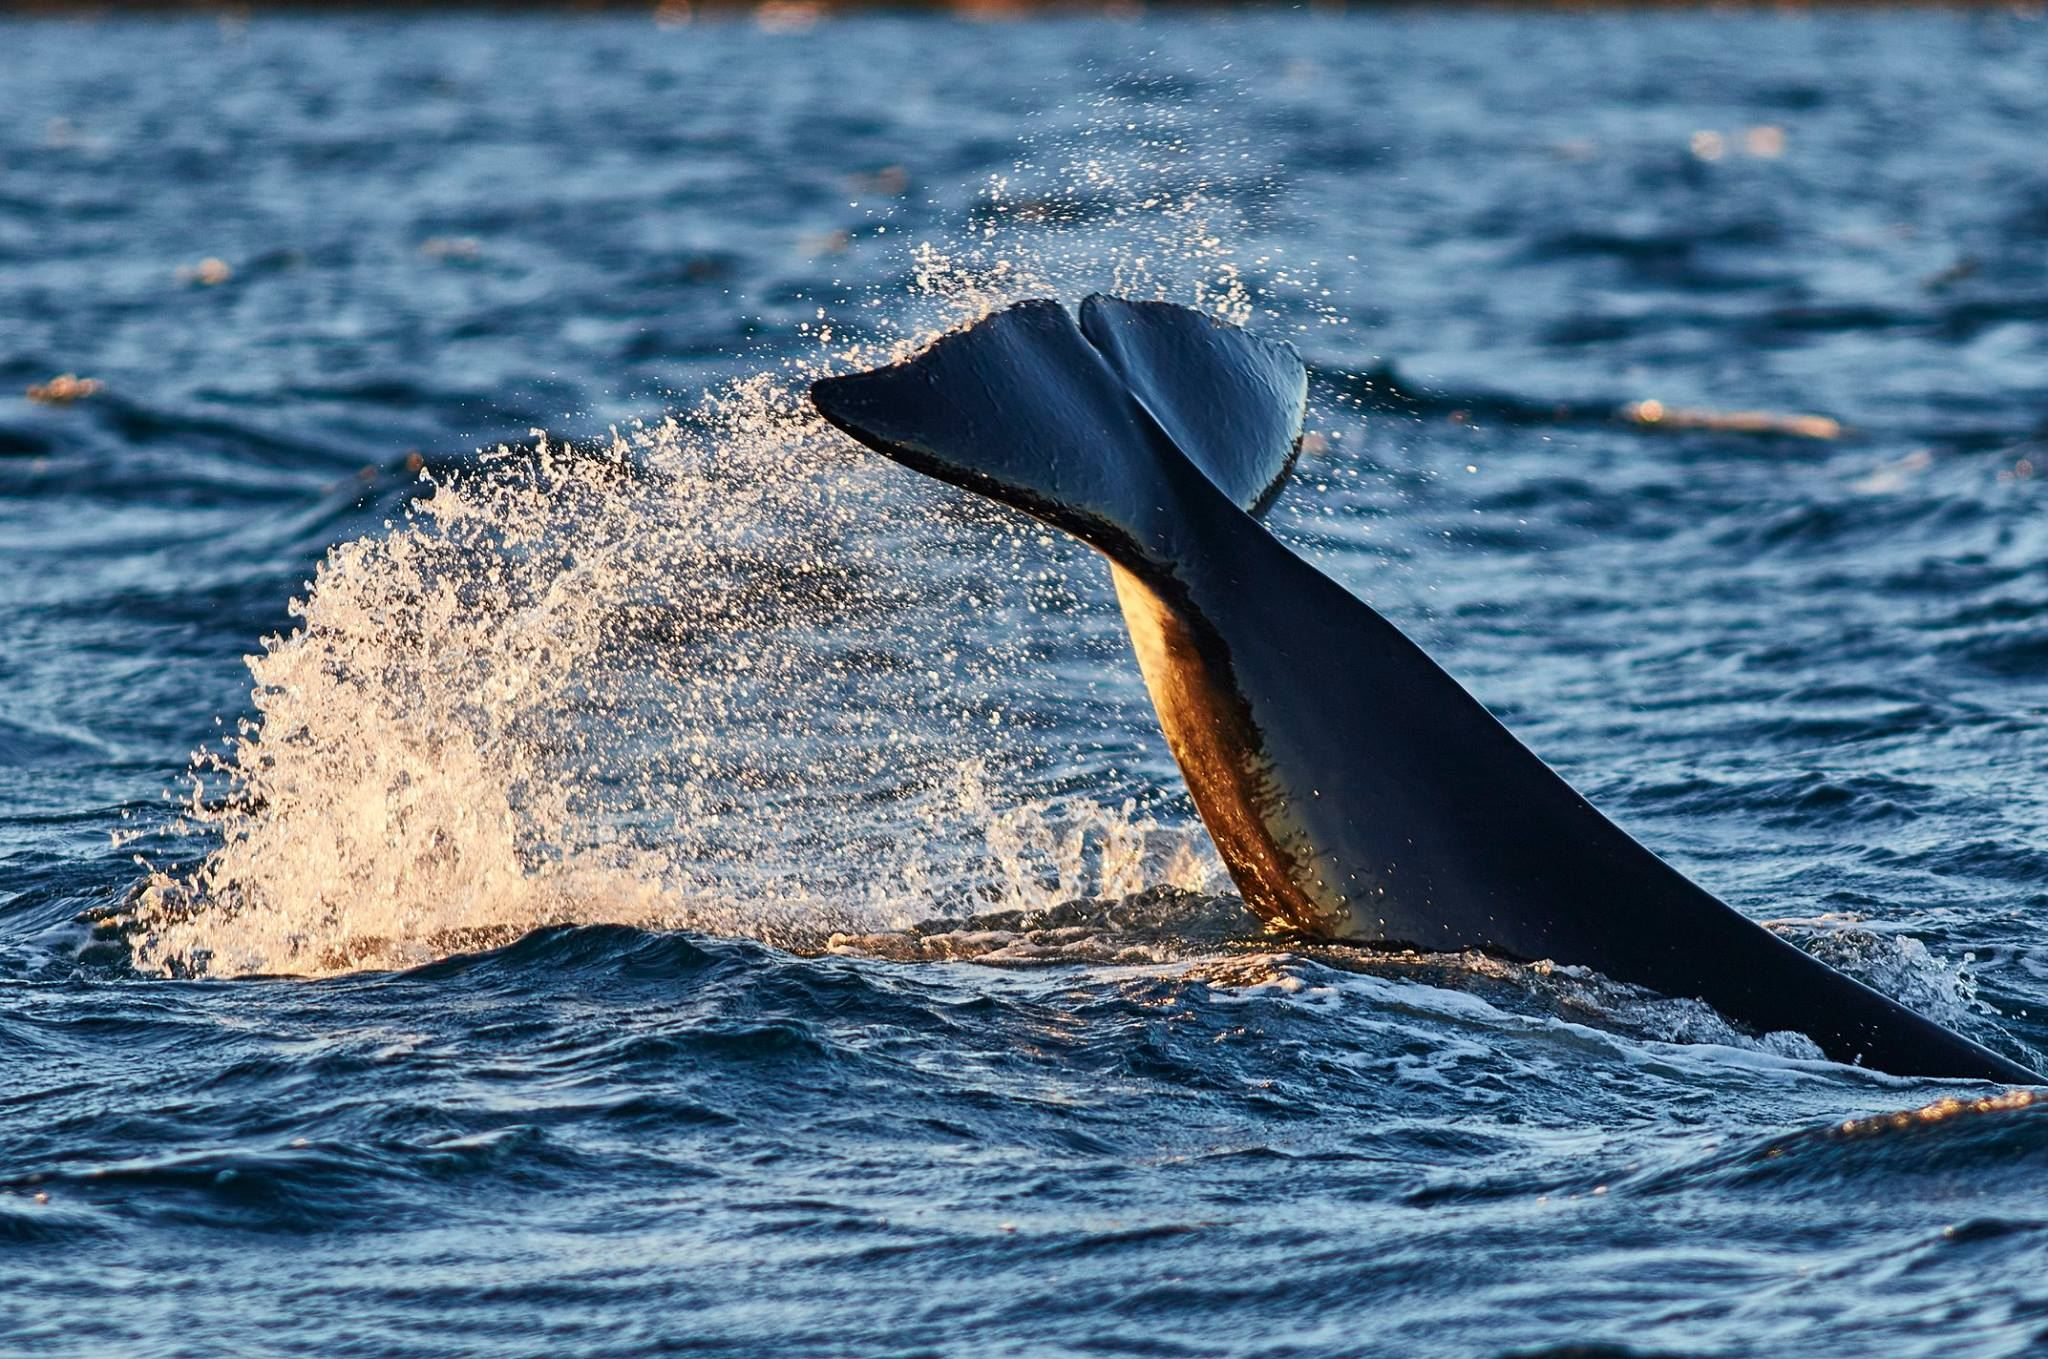 Whale watching in Magic Skjervøy - Green Gold of Norway